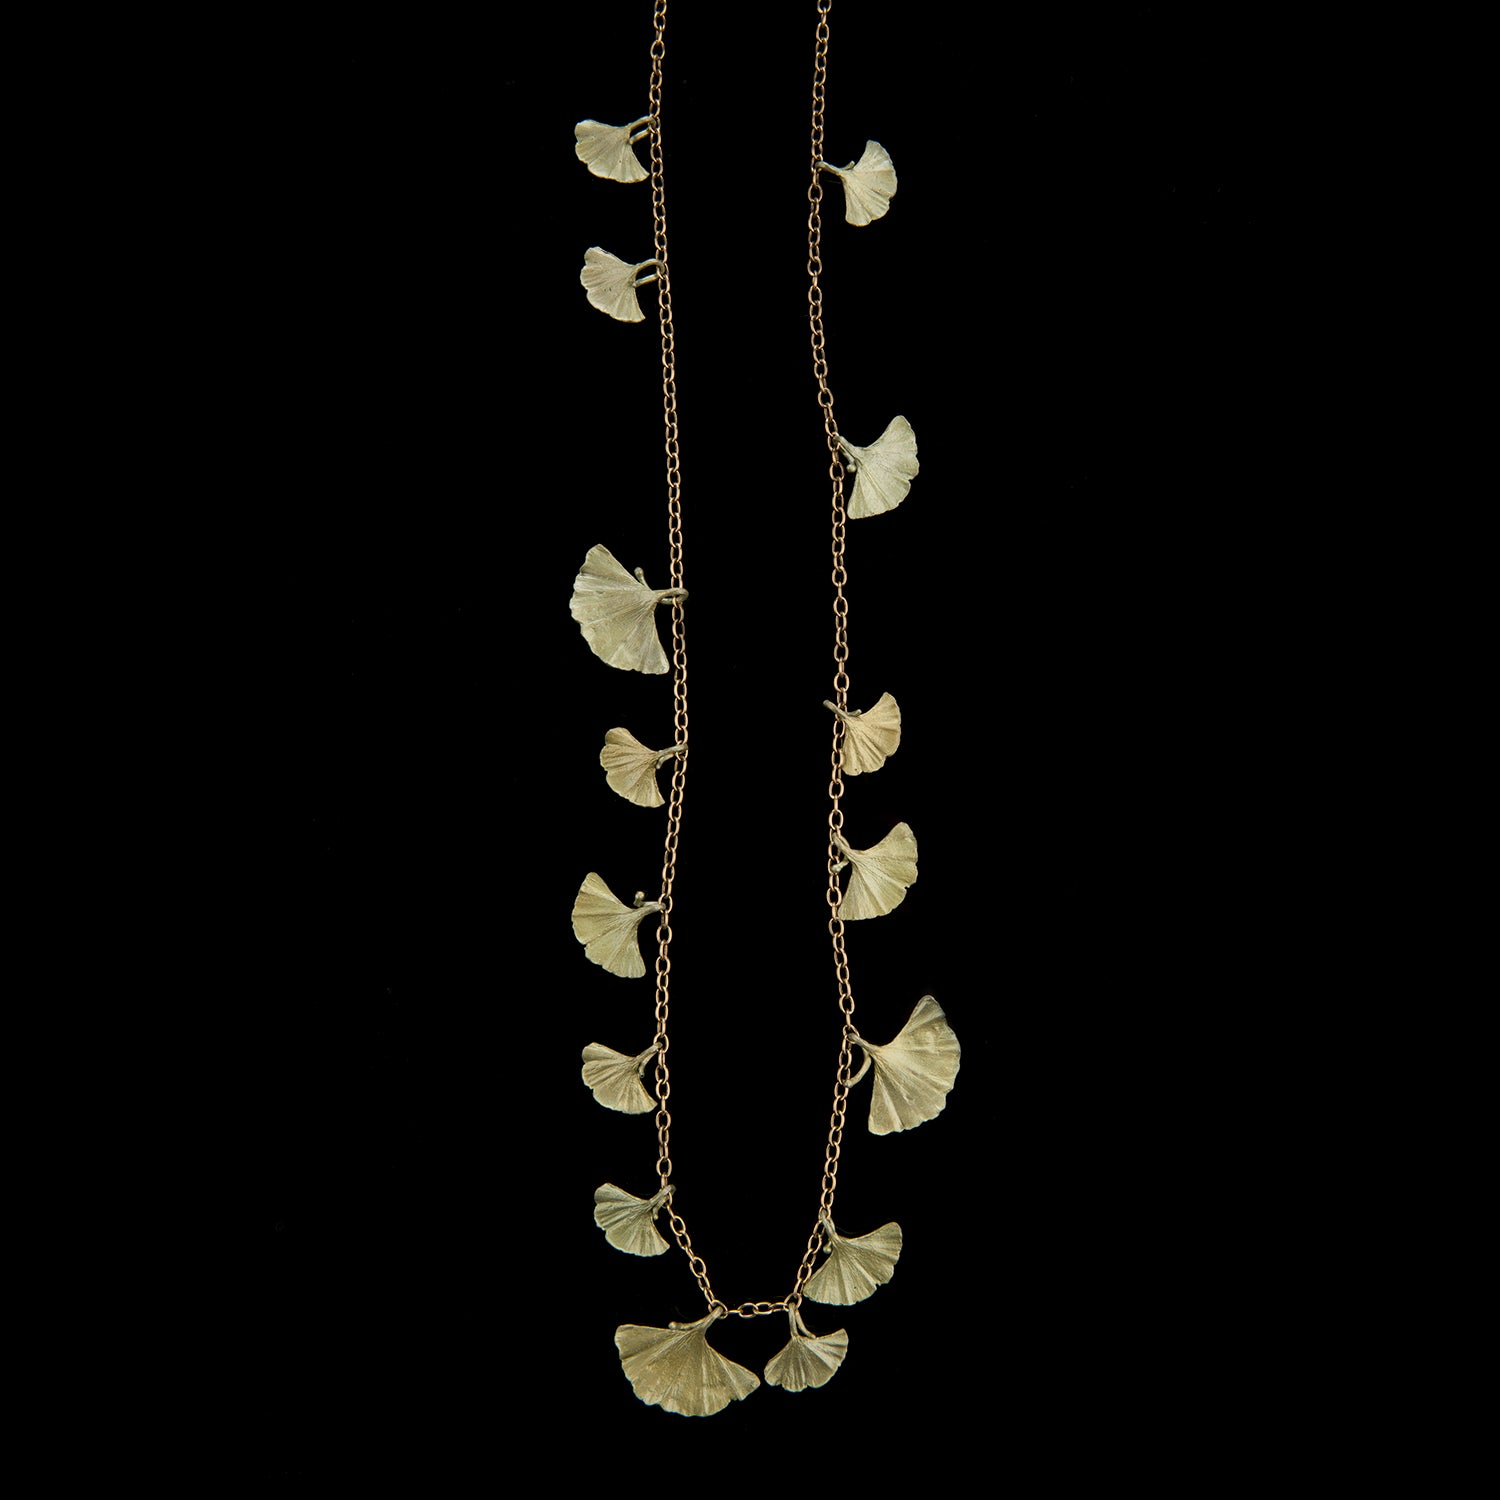 Ginkgo Necklace - Long